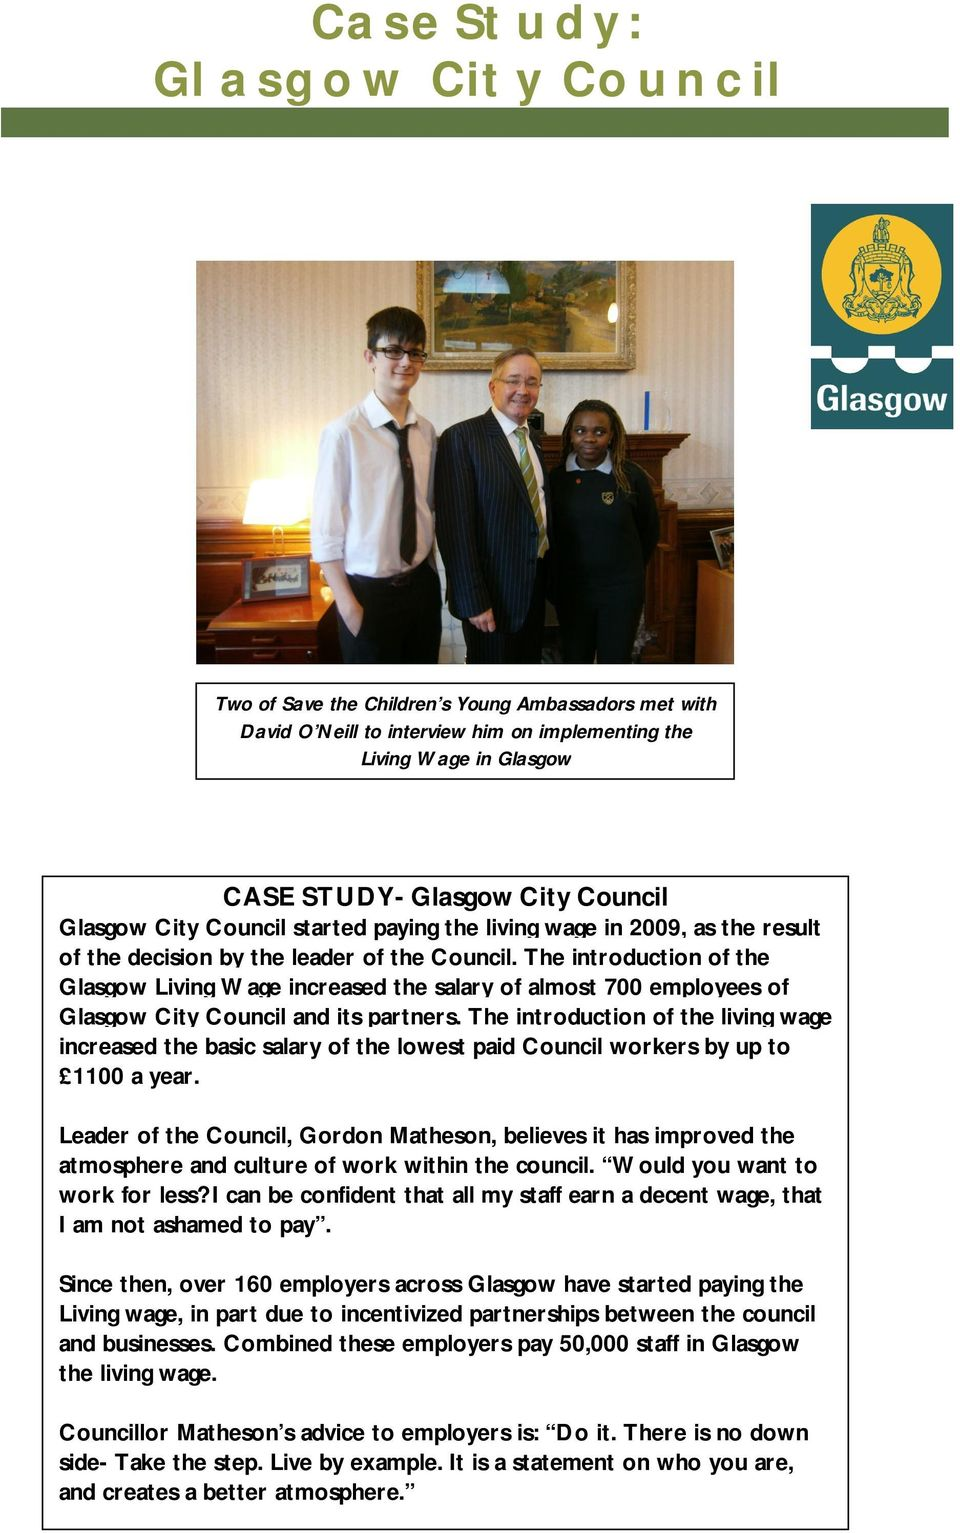 The introduction of the Glasgow Living Wage increased the salary of almost 700 employees of Glasgow City Council and its partners.